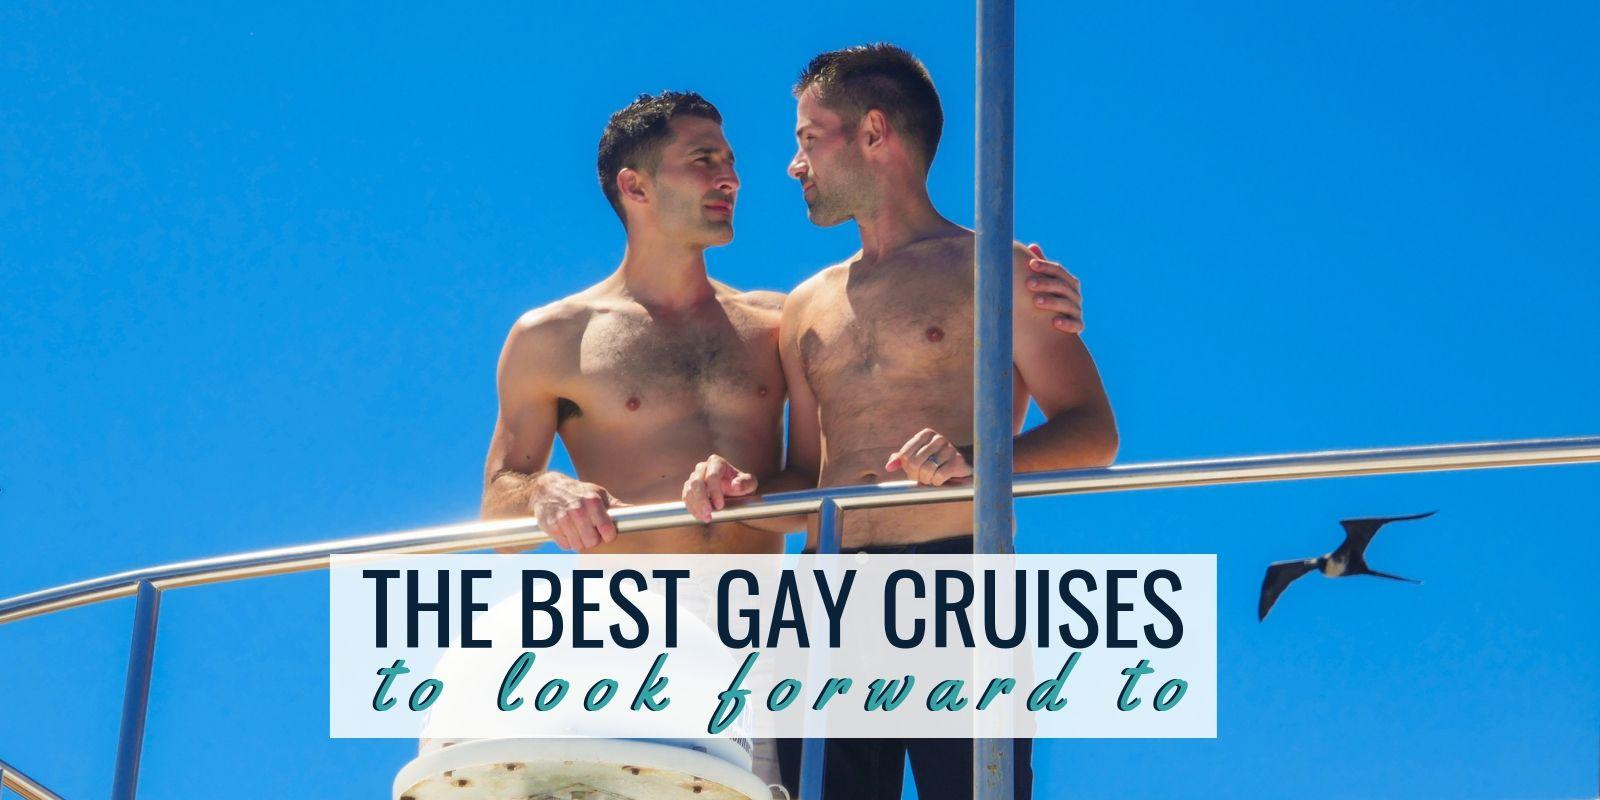 Our top picks for the best gay cruises to look forward to